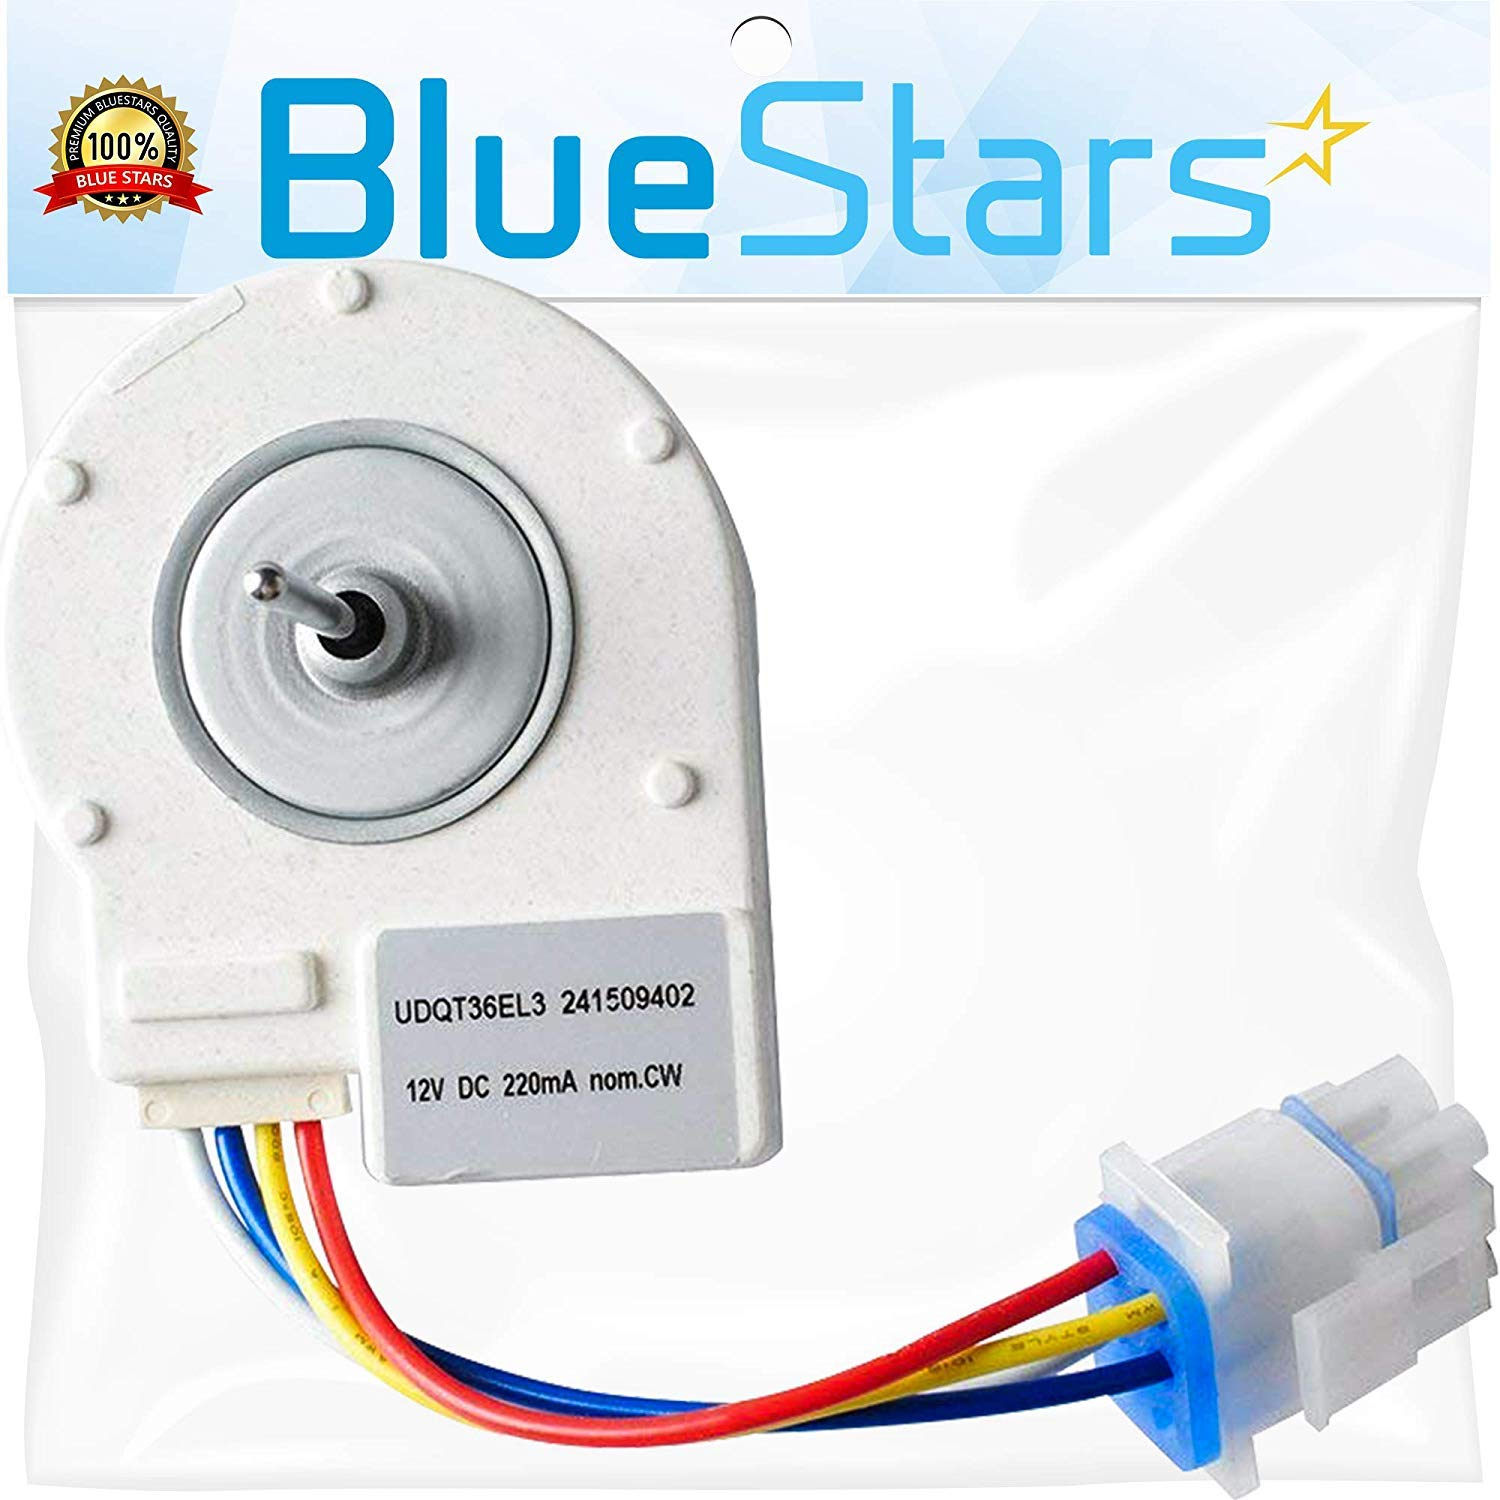 Ultra Durable 241509402 Evaporator Fan Motor Replacement Part by Blue Stars - Exact Fit for Frigidaire Electrolux Kenmore Refrigerator - Replaces 241509401 7241509402 PS1526073 BlueStars